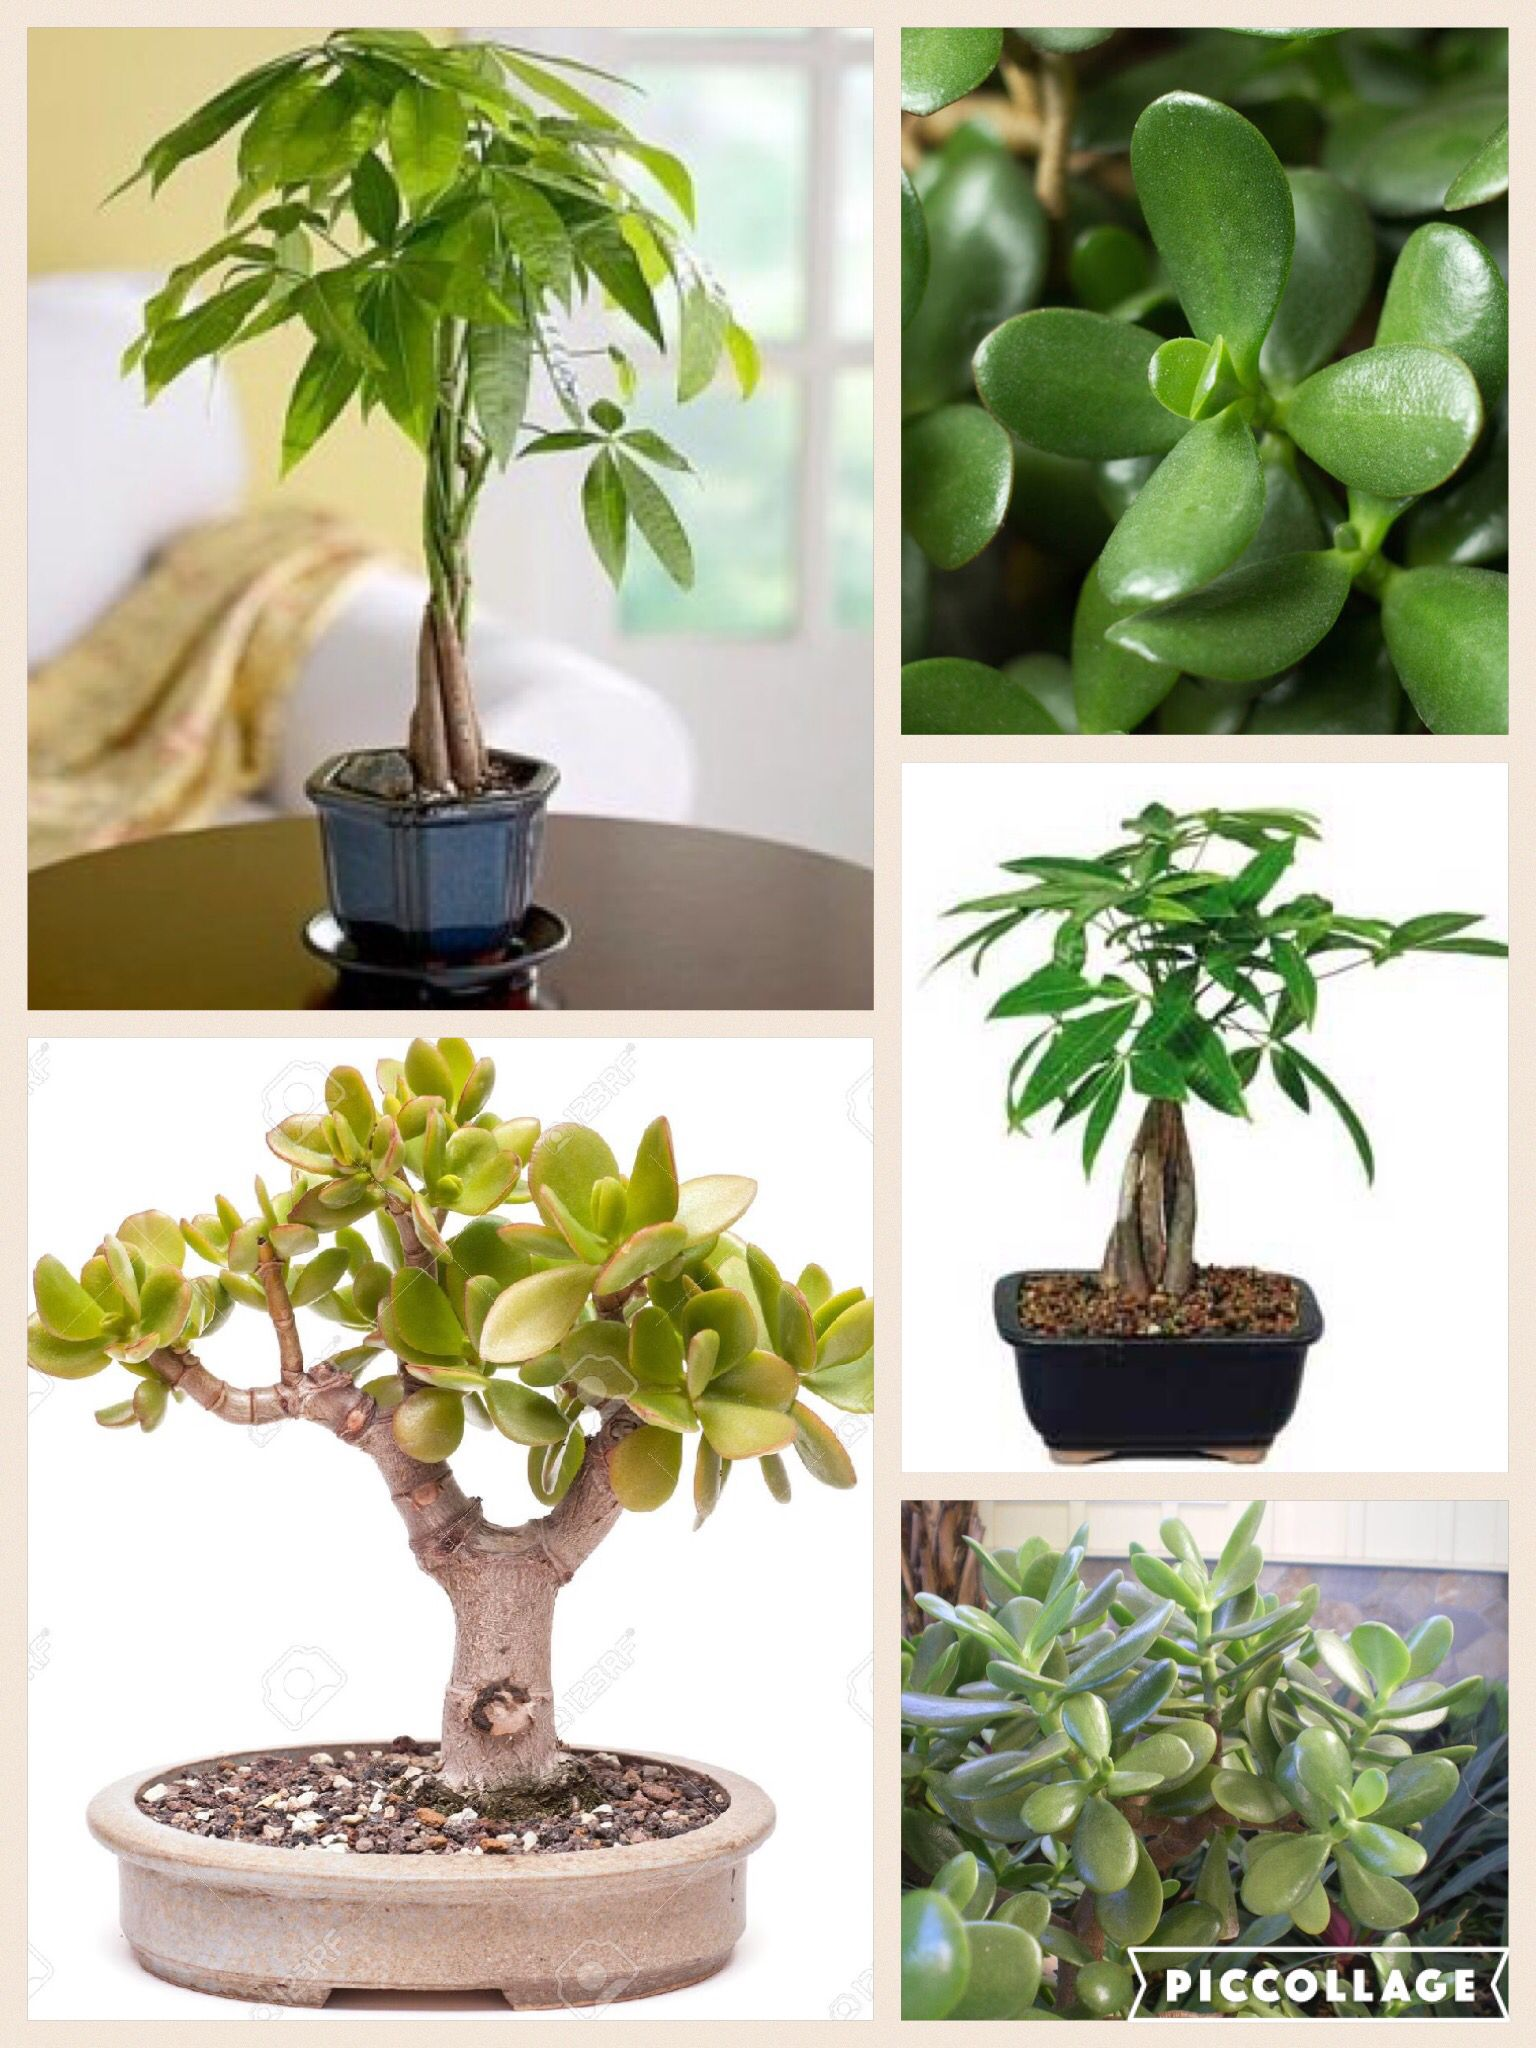 Money Plant Trees in Feng Shui Best to place them in the SE sector on money plant in house, money plant in the garden, money plant in vase,